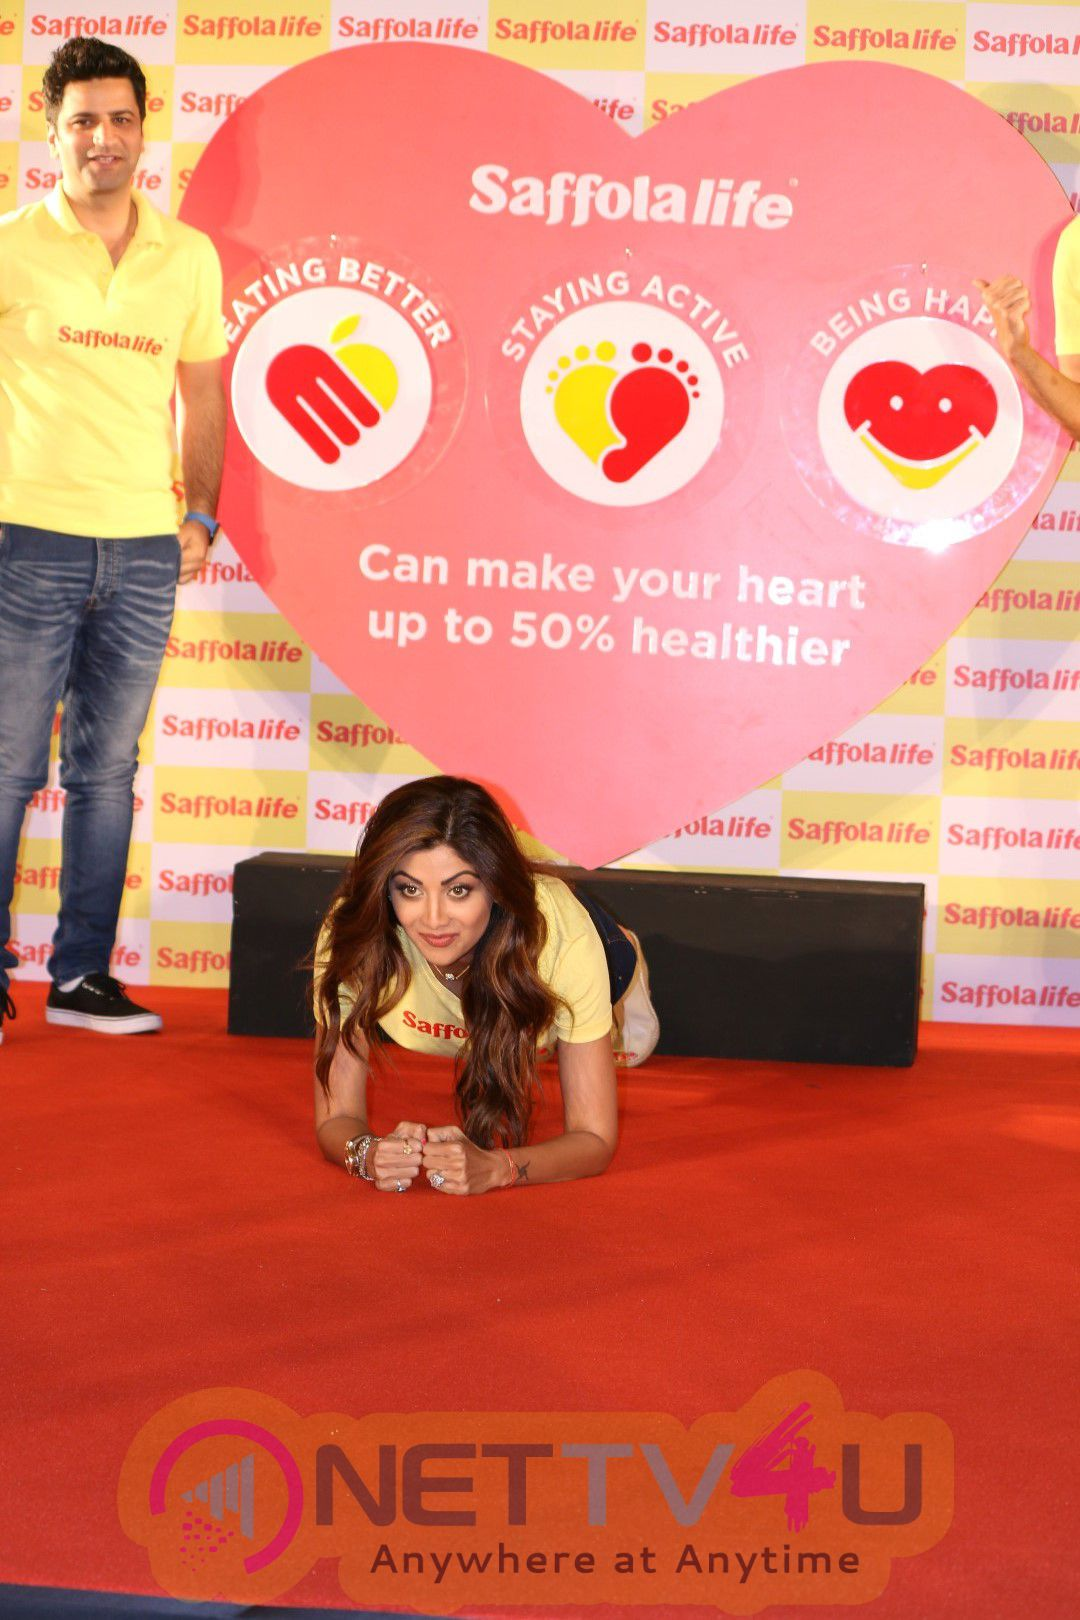 Shilpa Shetty, Kunal Kapur, Cyrus Sahukar Celebrate Saffola Life World Heart Day For Healthy Photos Hindi Gallery